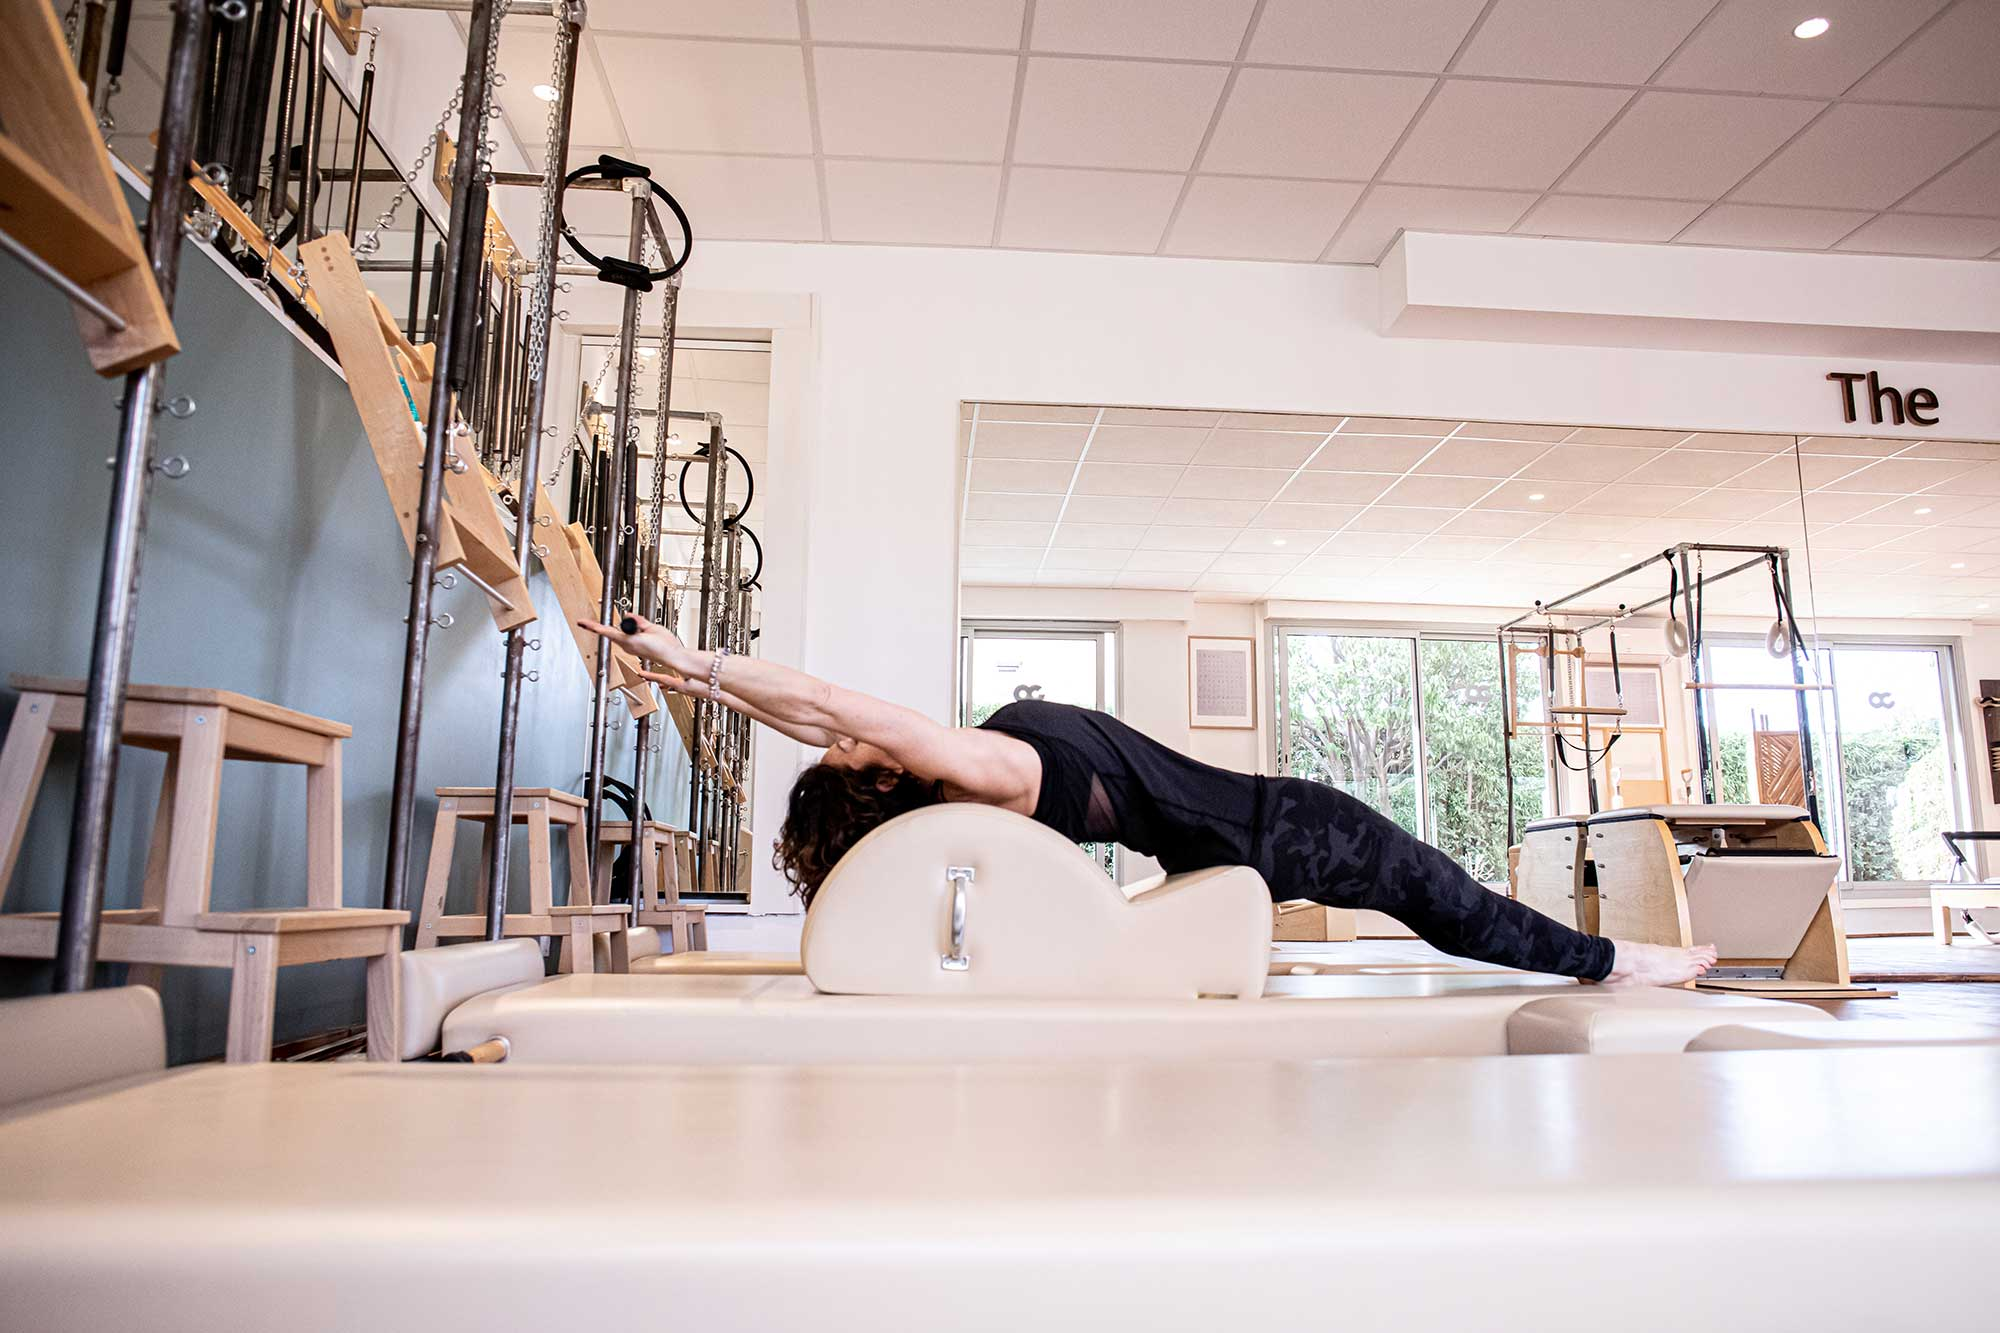 Un professeur de pilates